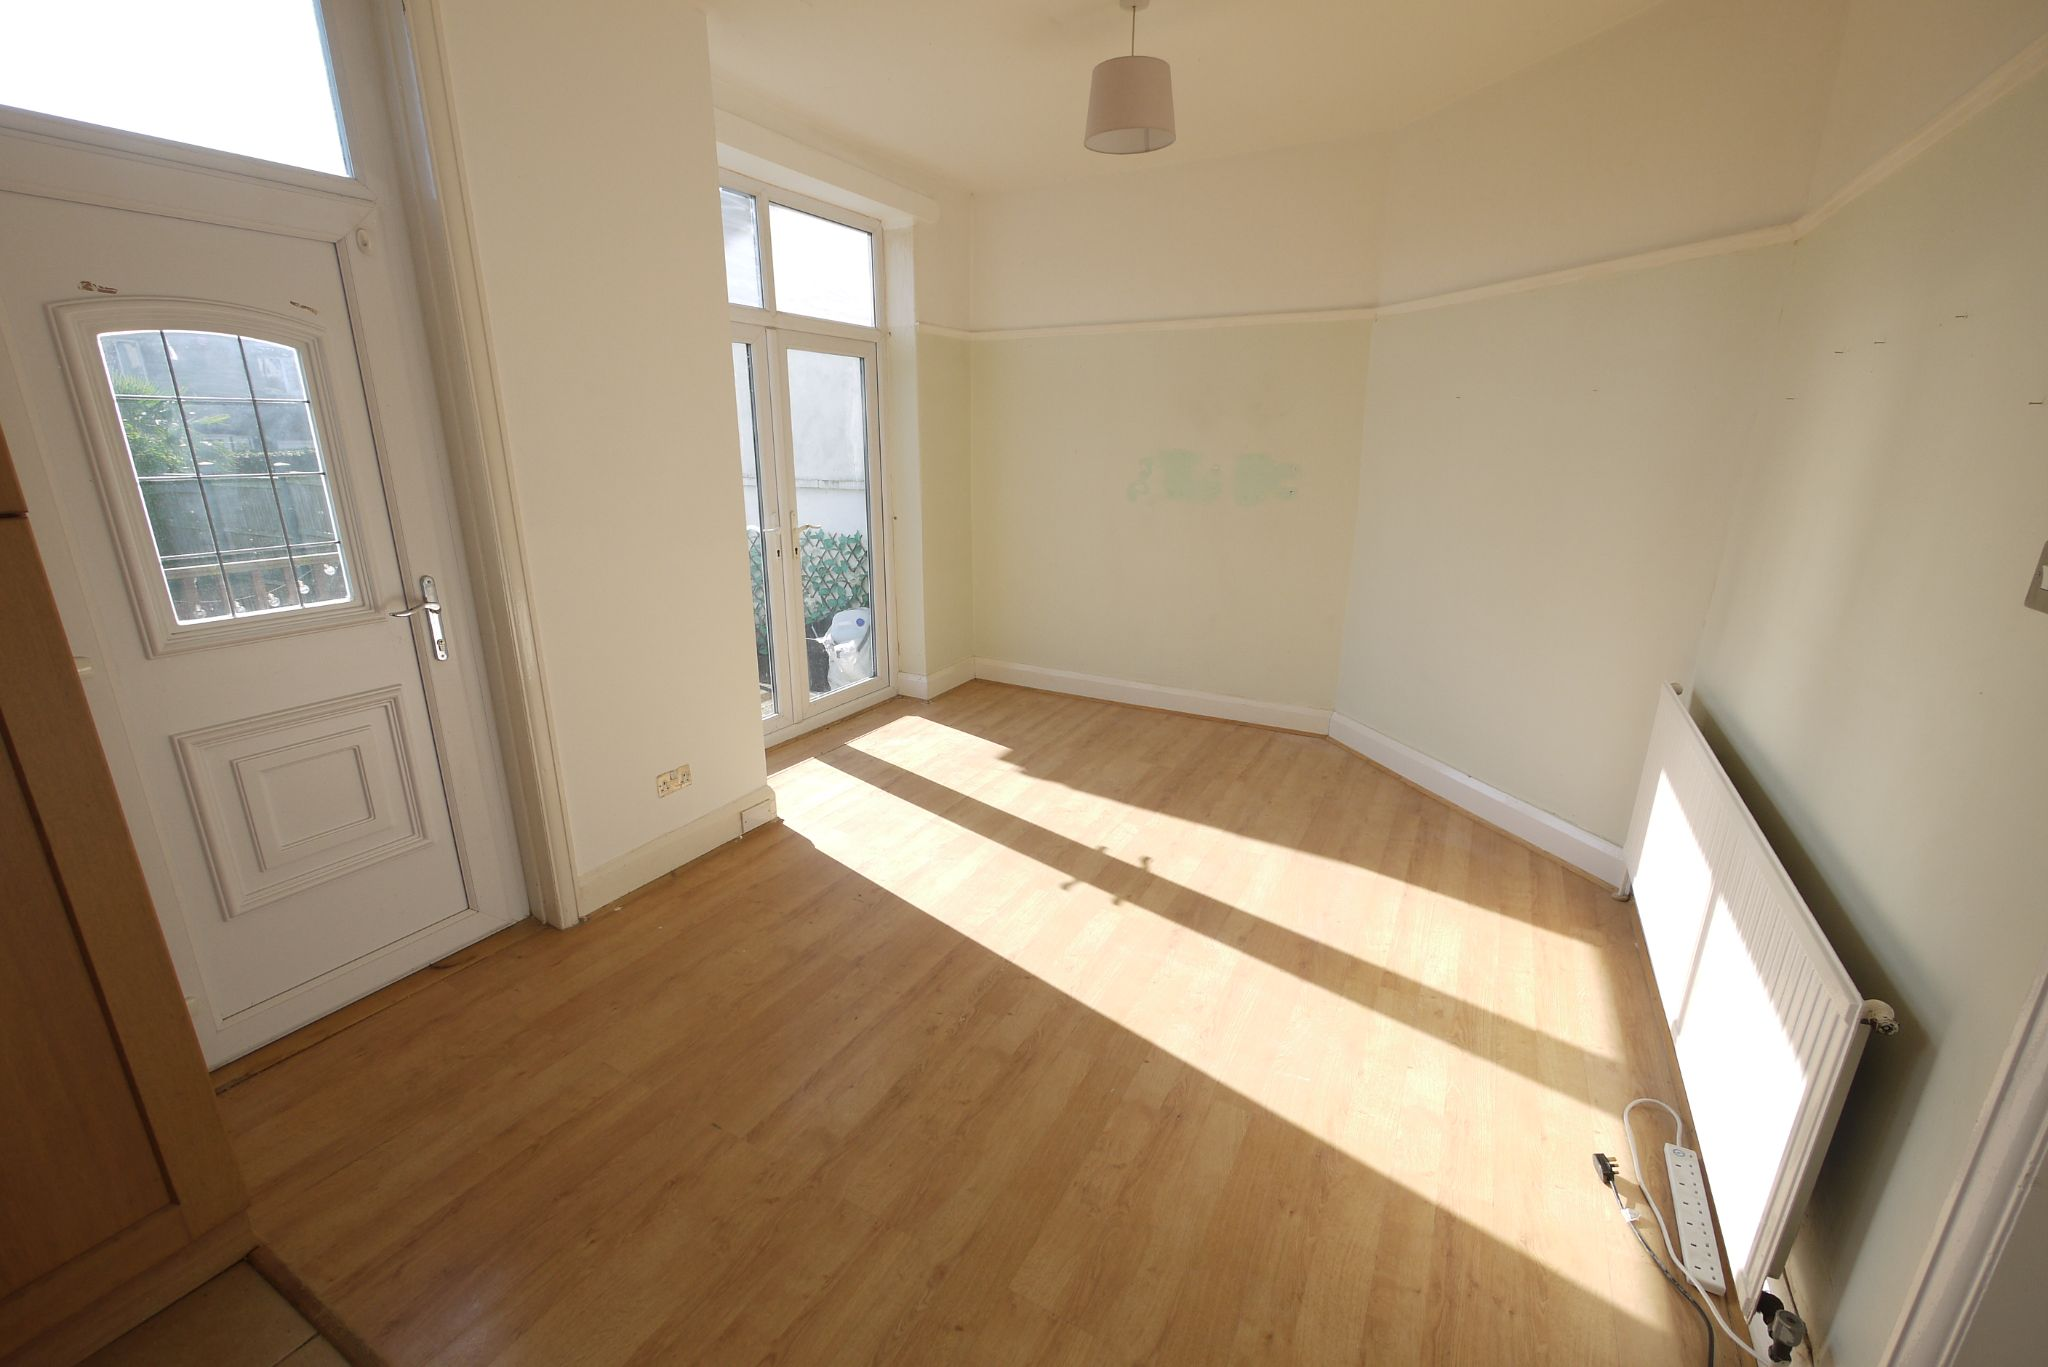 3 bedroom semi-detached house SSTC in Brighouse - Photograph 4.